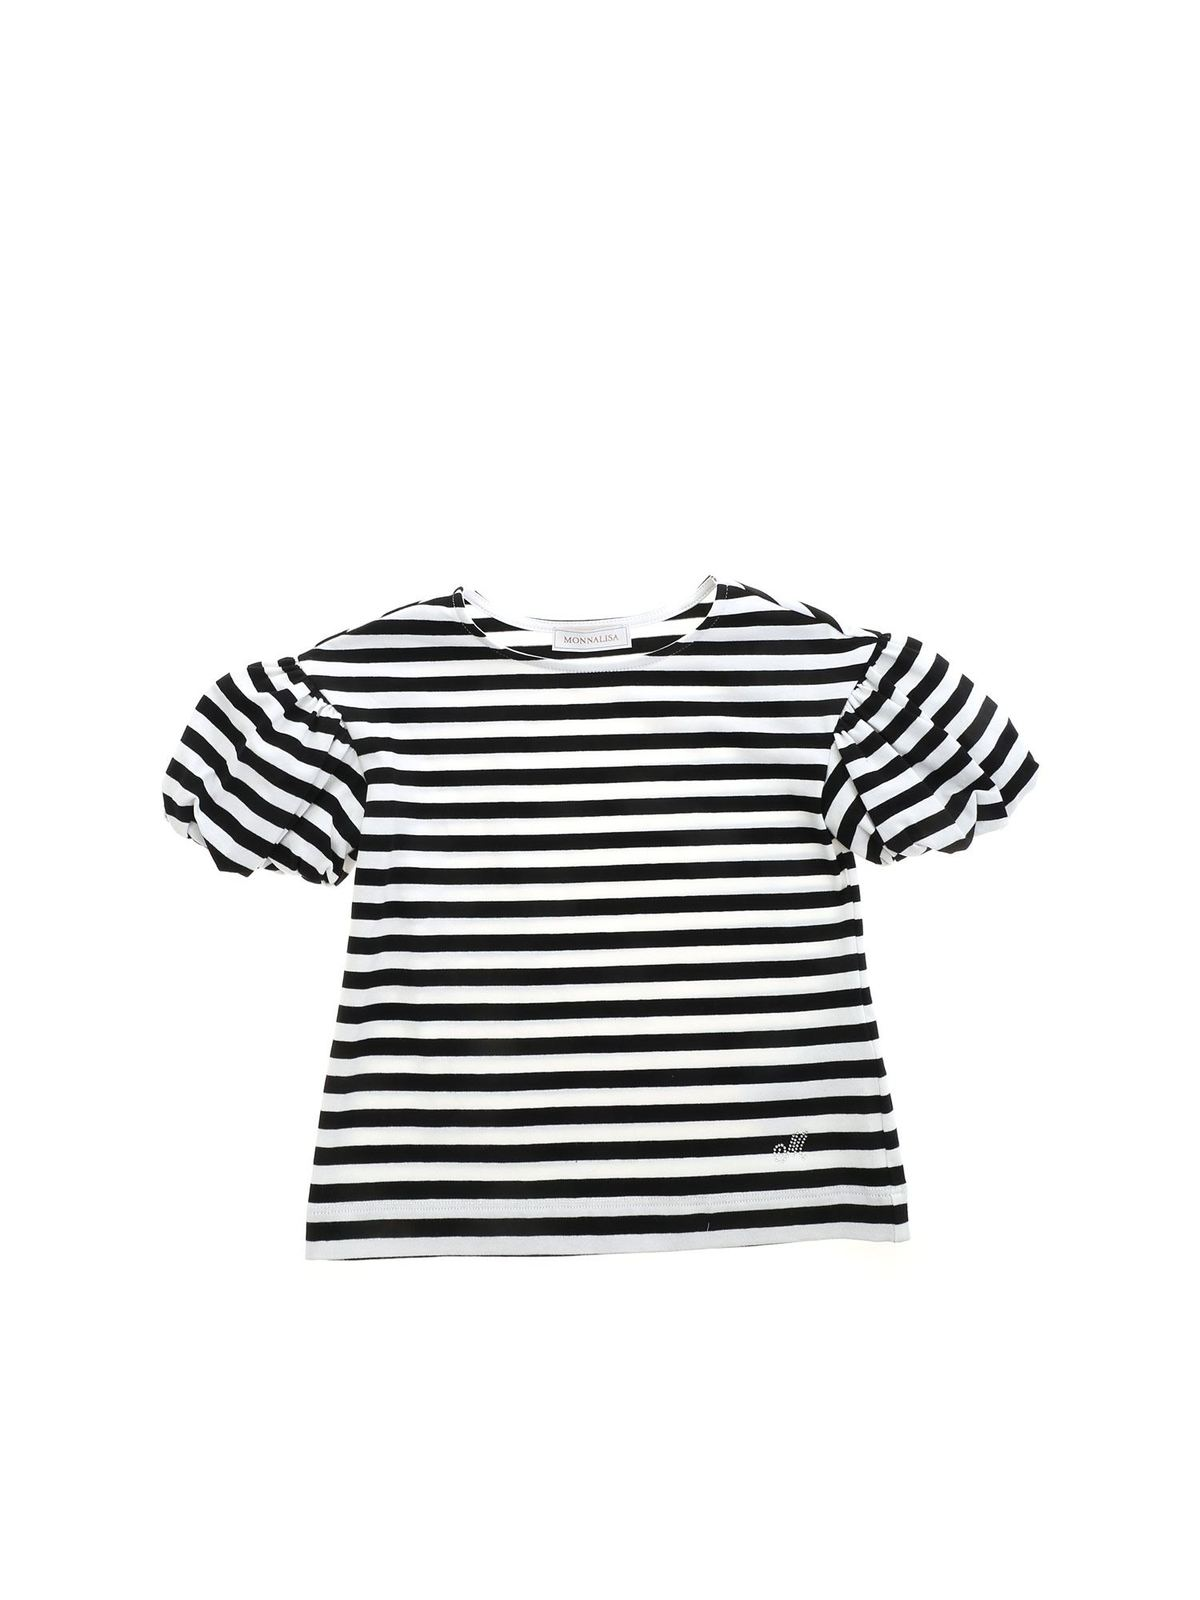 Monnalisa STRIPED T-SHIRT IN BLACK AND WHITE